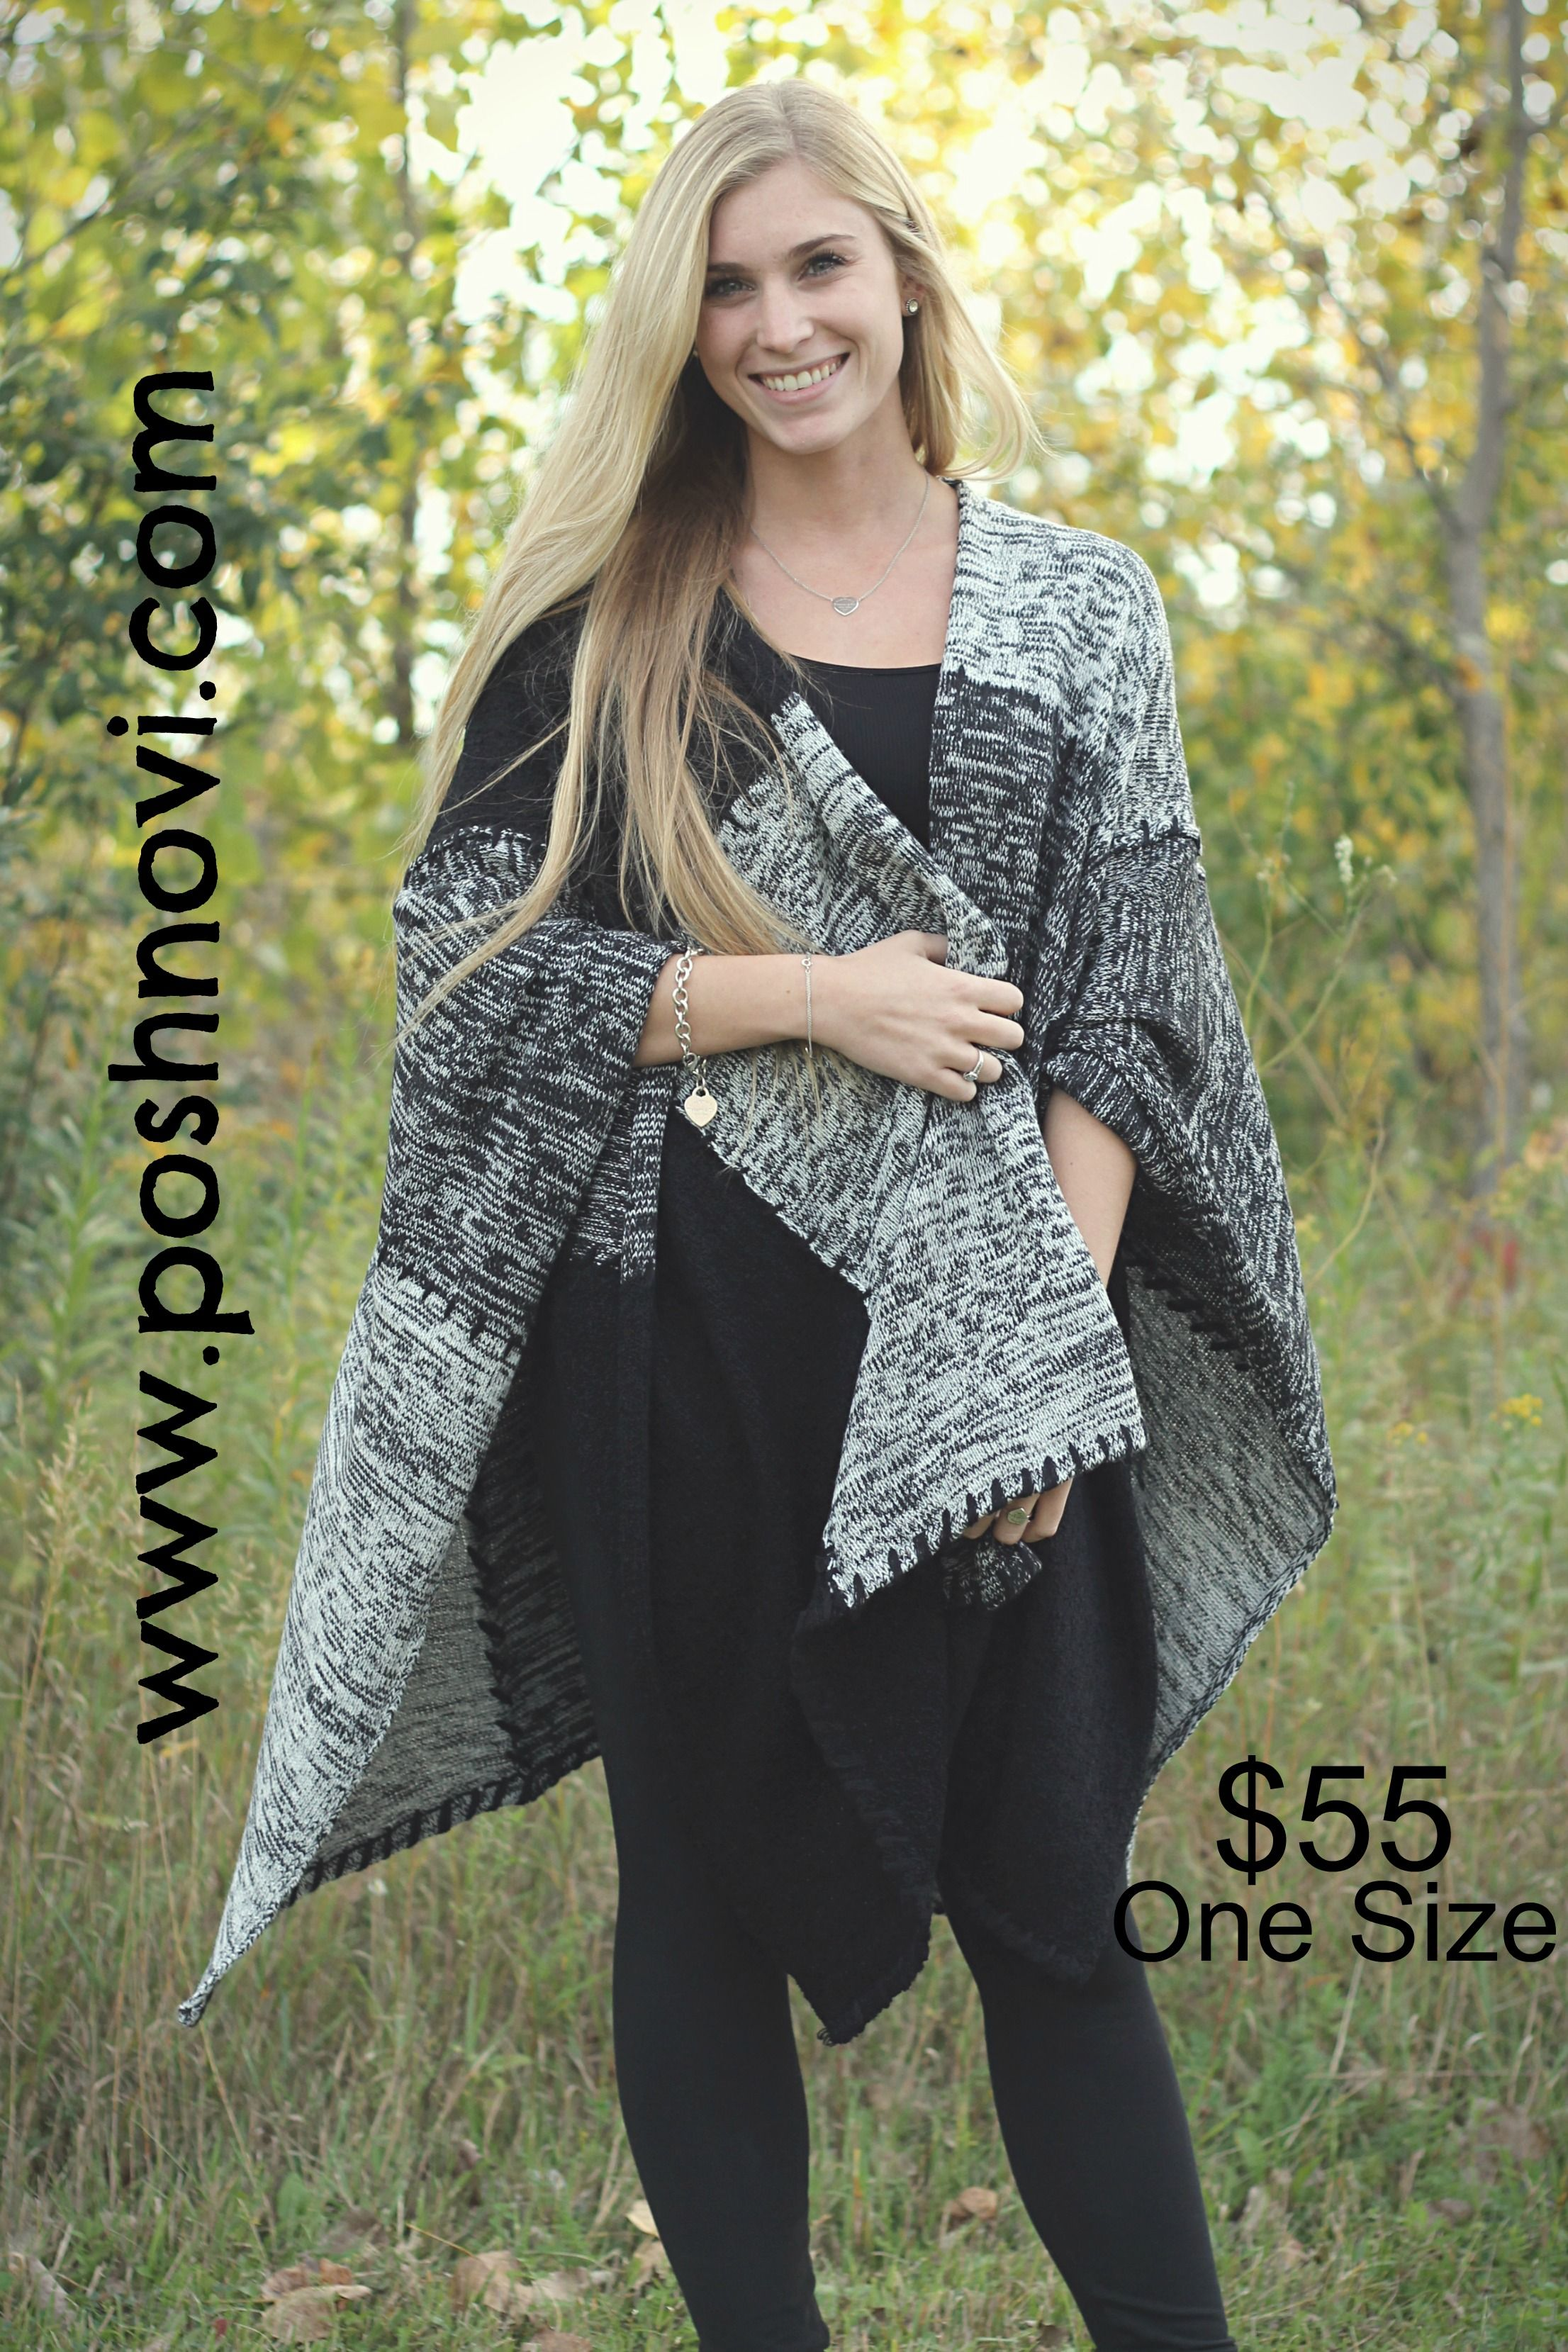 Super Stylish Shawl. We love it paired with long sleeves! Perfect warm sweater for the upcoming coooold season! $55 One Size.  http://www.poshnovi.com/collections/new-arrivals/products/black-white-patterned-shawl